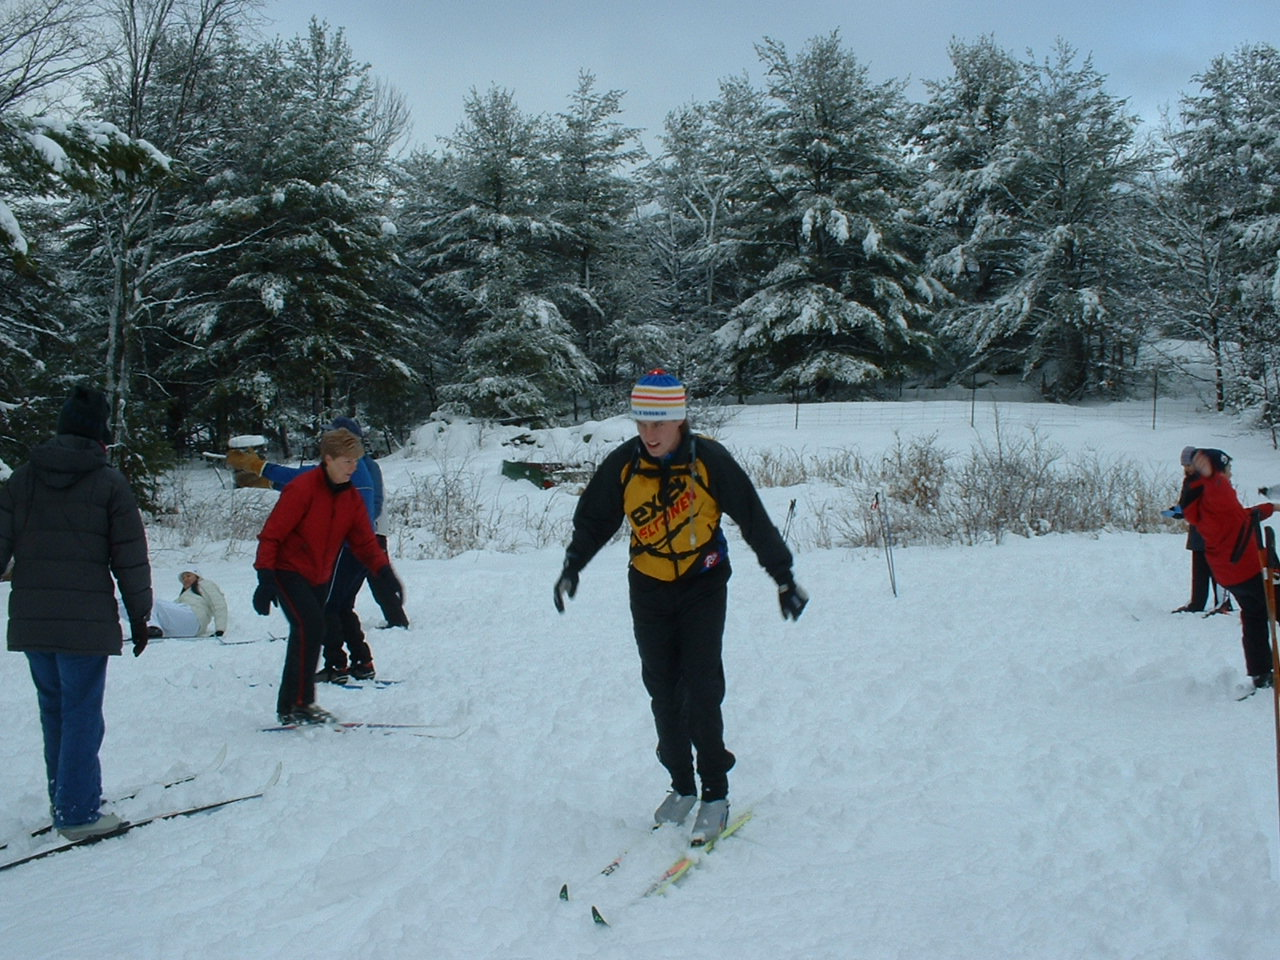 Cross Country Ski Lessons Equipment Provided - High School Student Outing At Wit S End B B 015